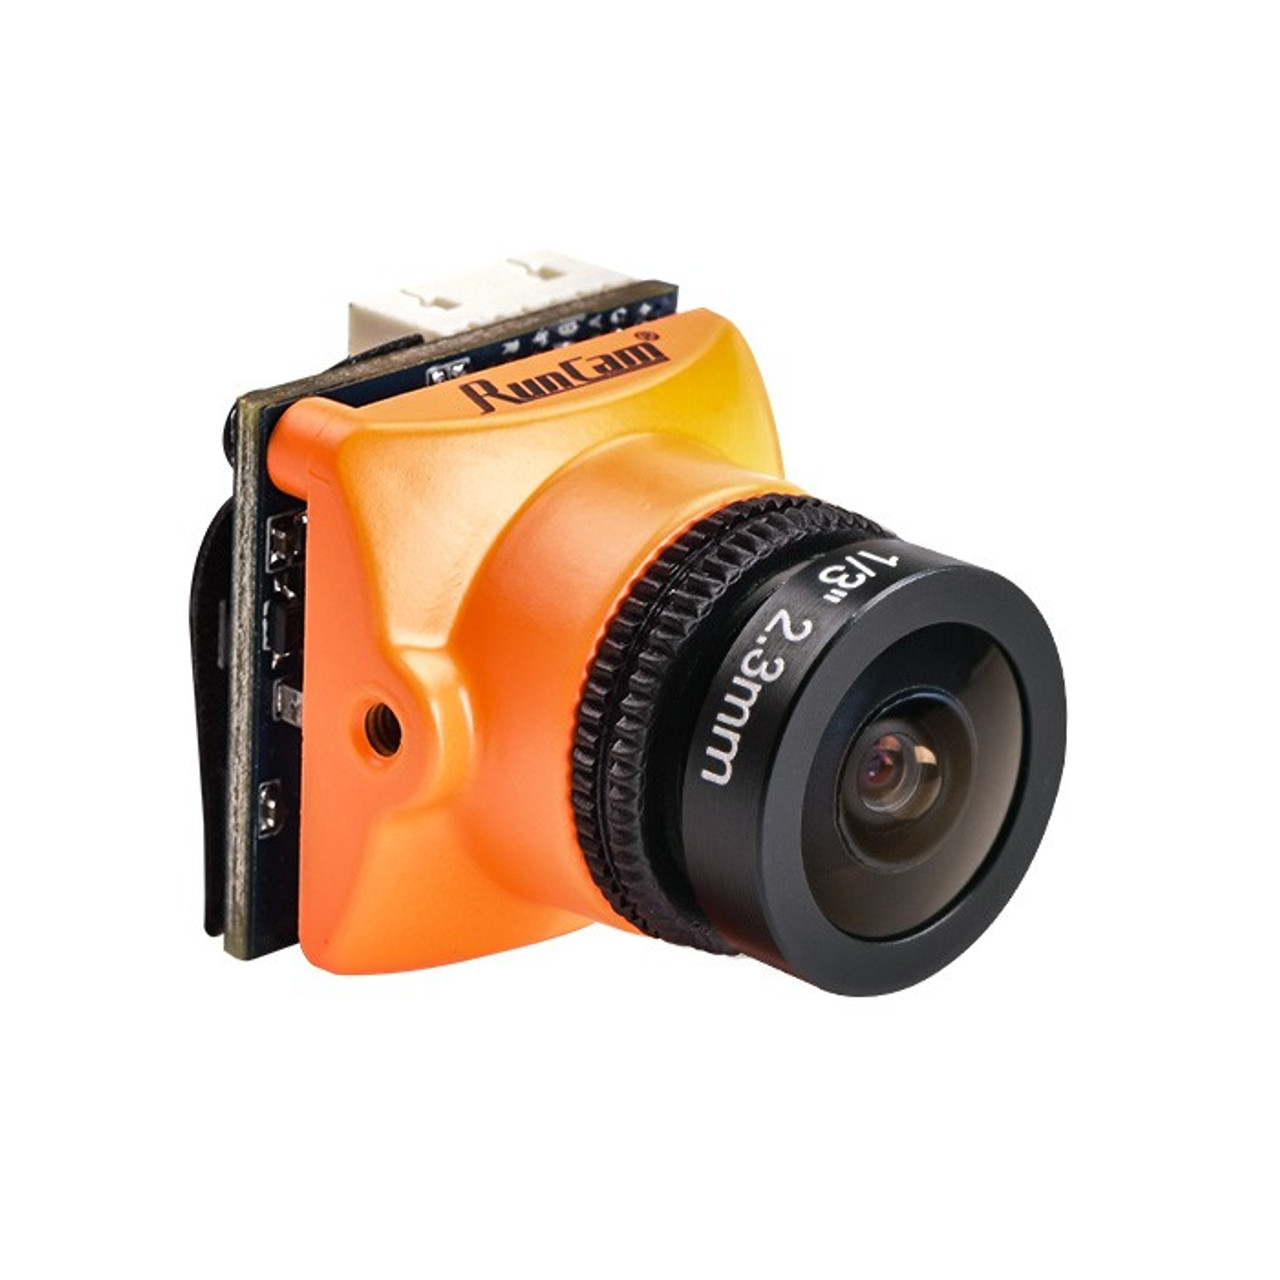 Runcam Micro Swift 2 600TVL CCD FPV Camera (2.1mm) Orange